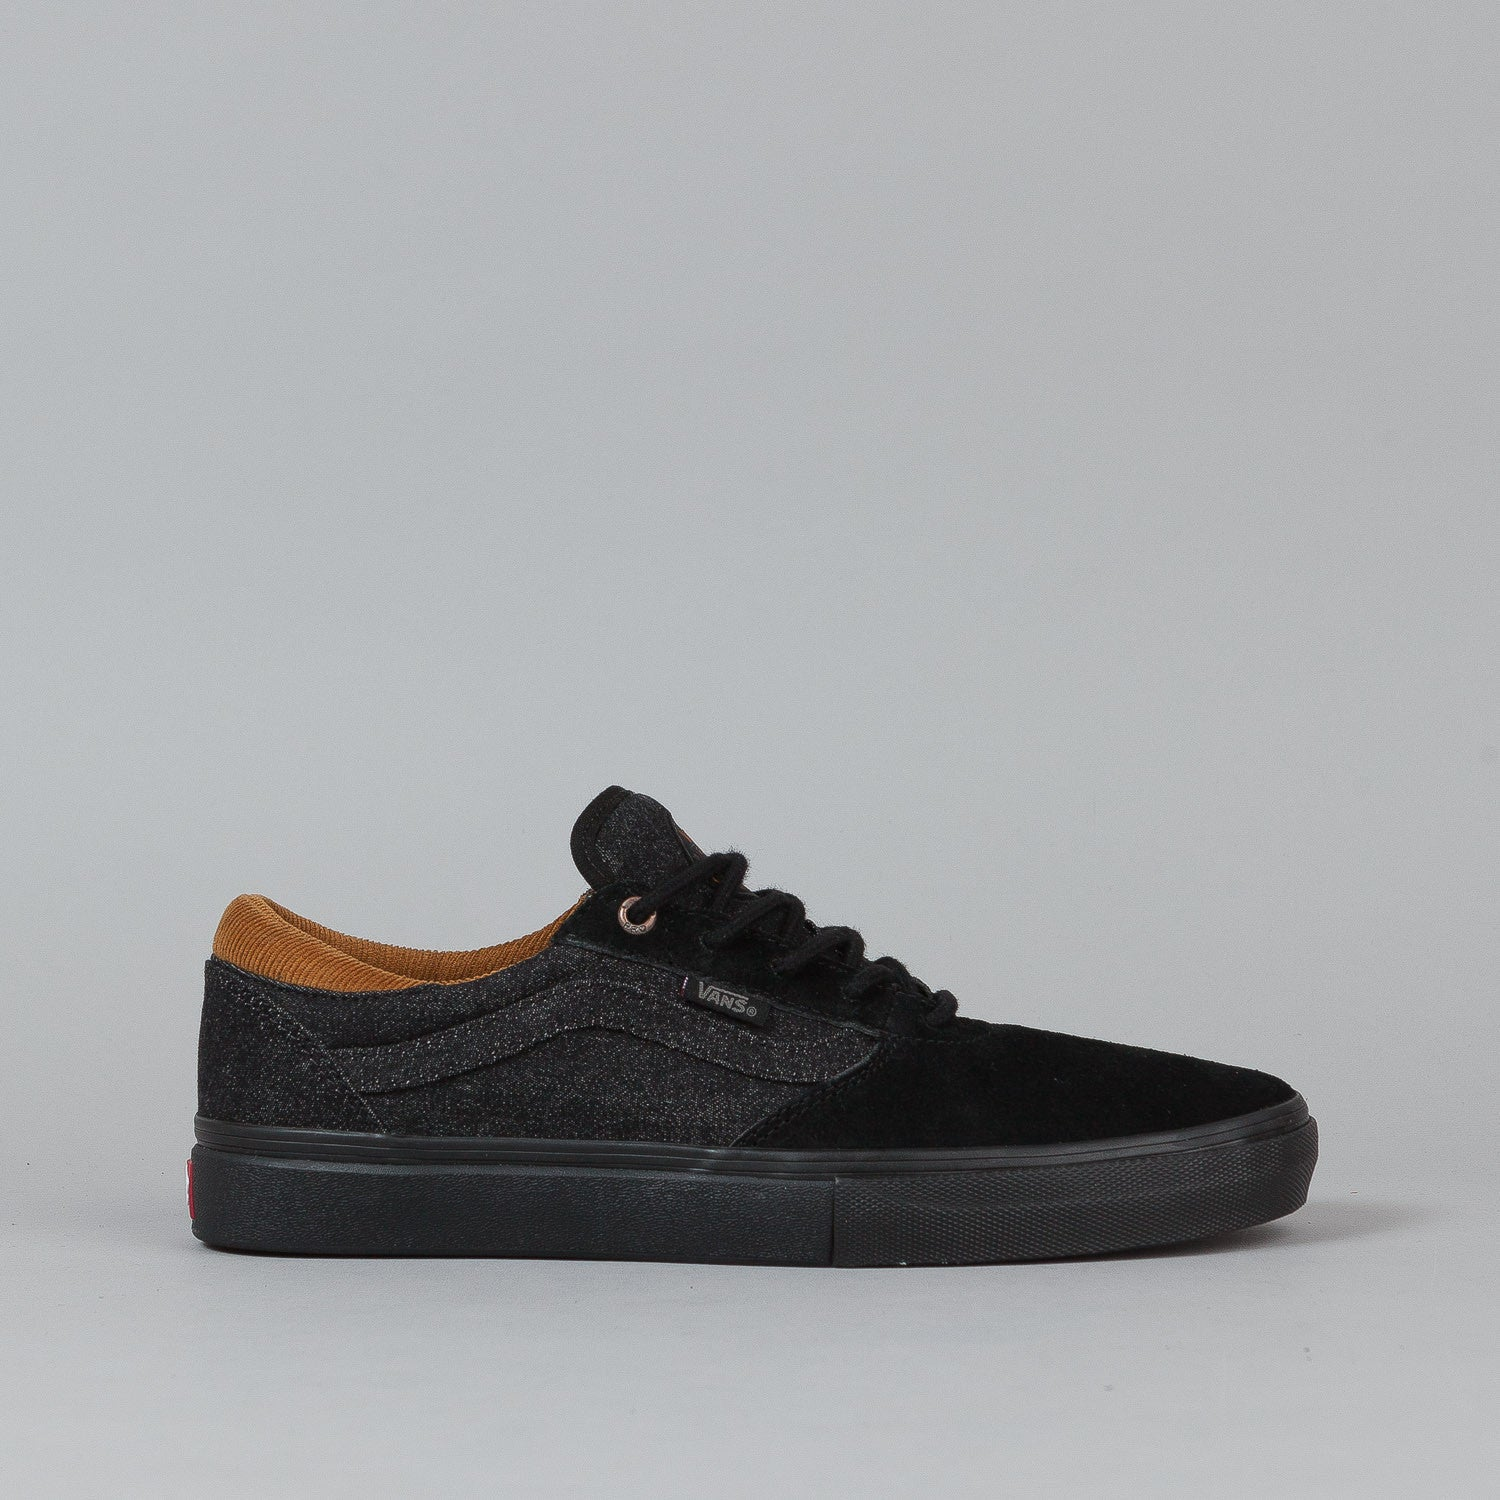 Vans Gilbert Crockett Shoes